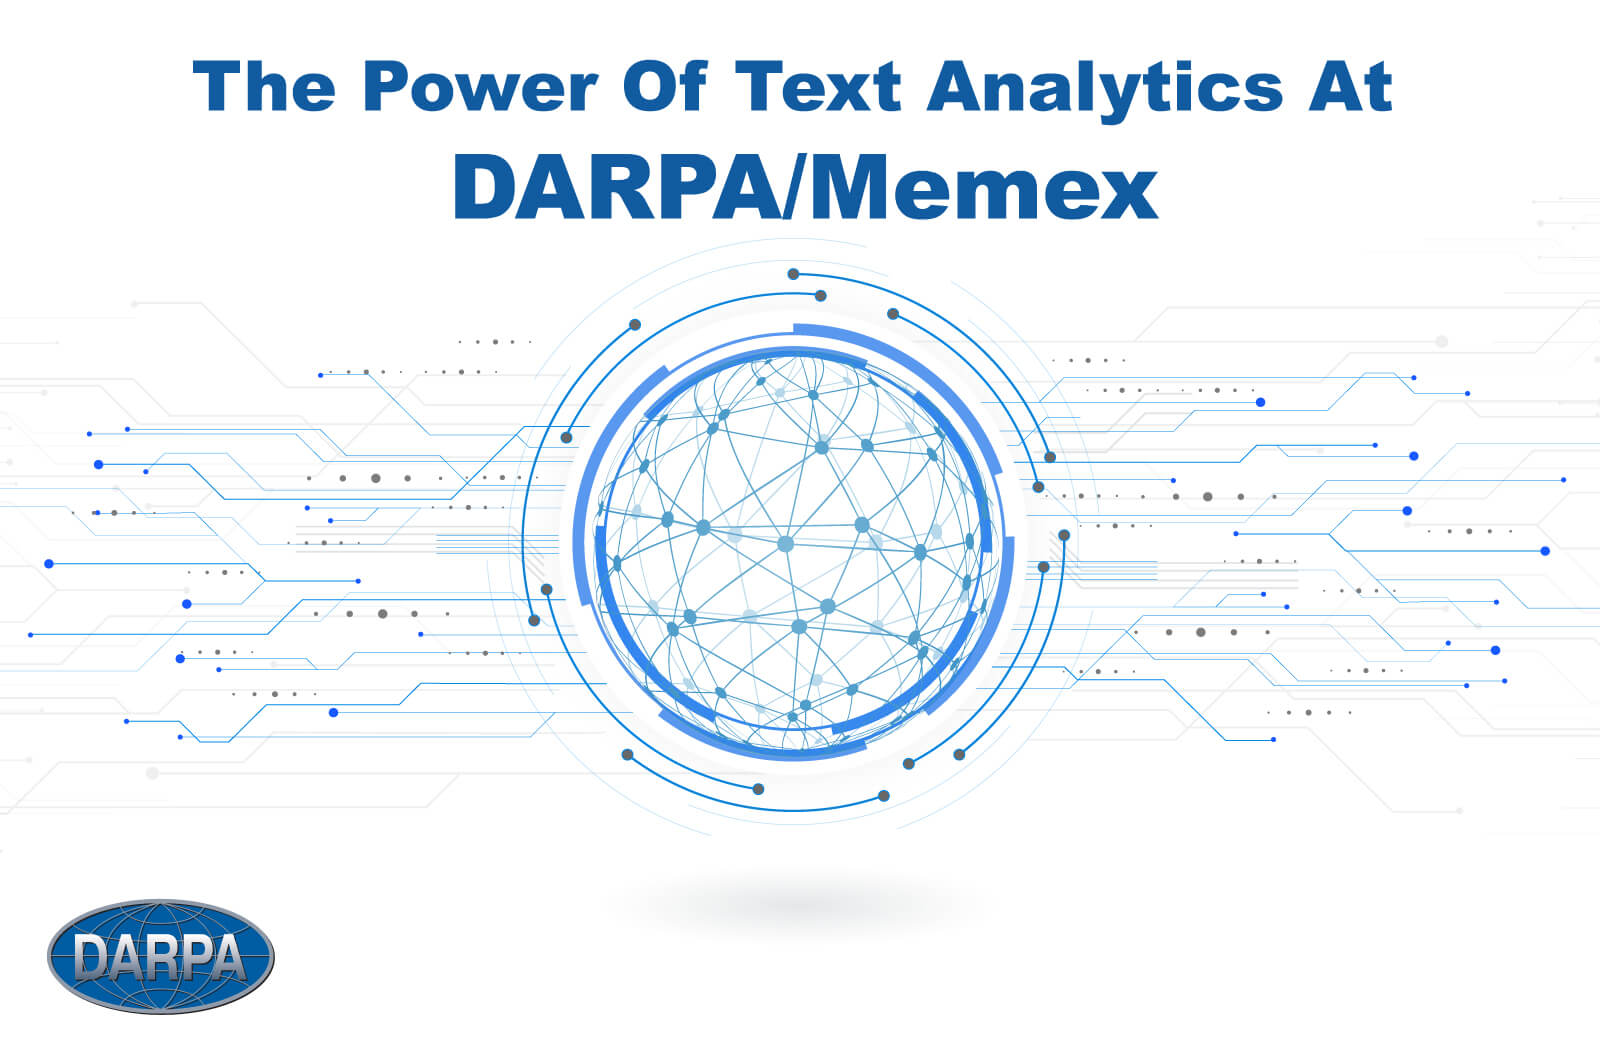 The Power of Text Analytics at DARPA/Memex